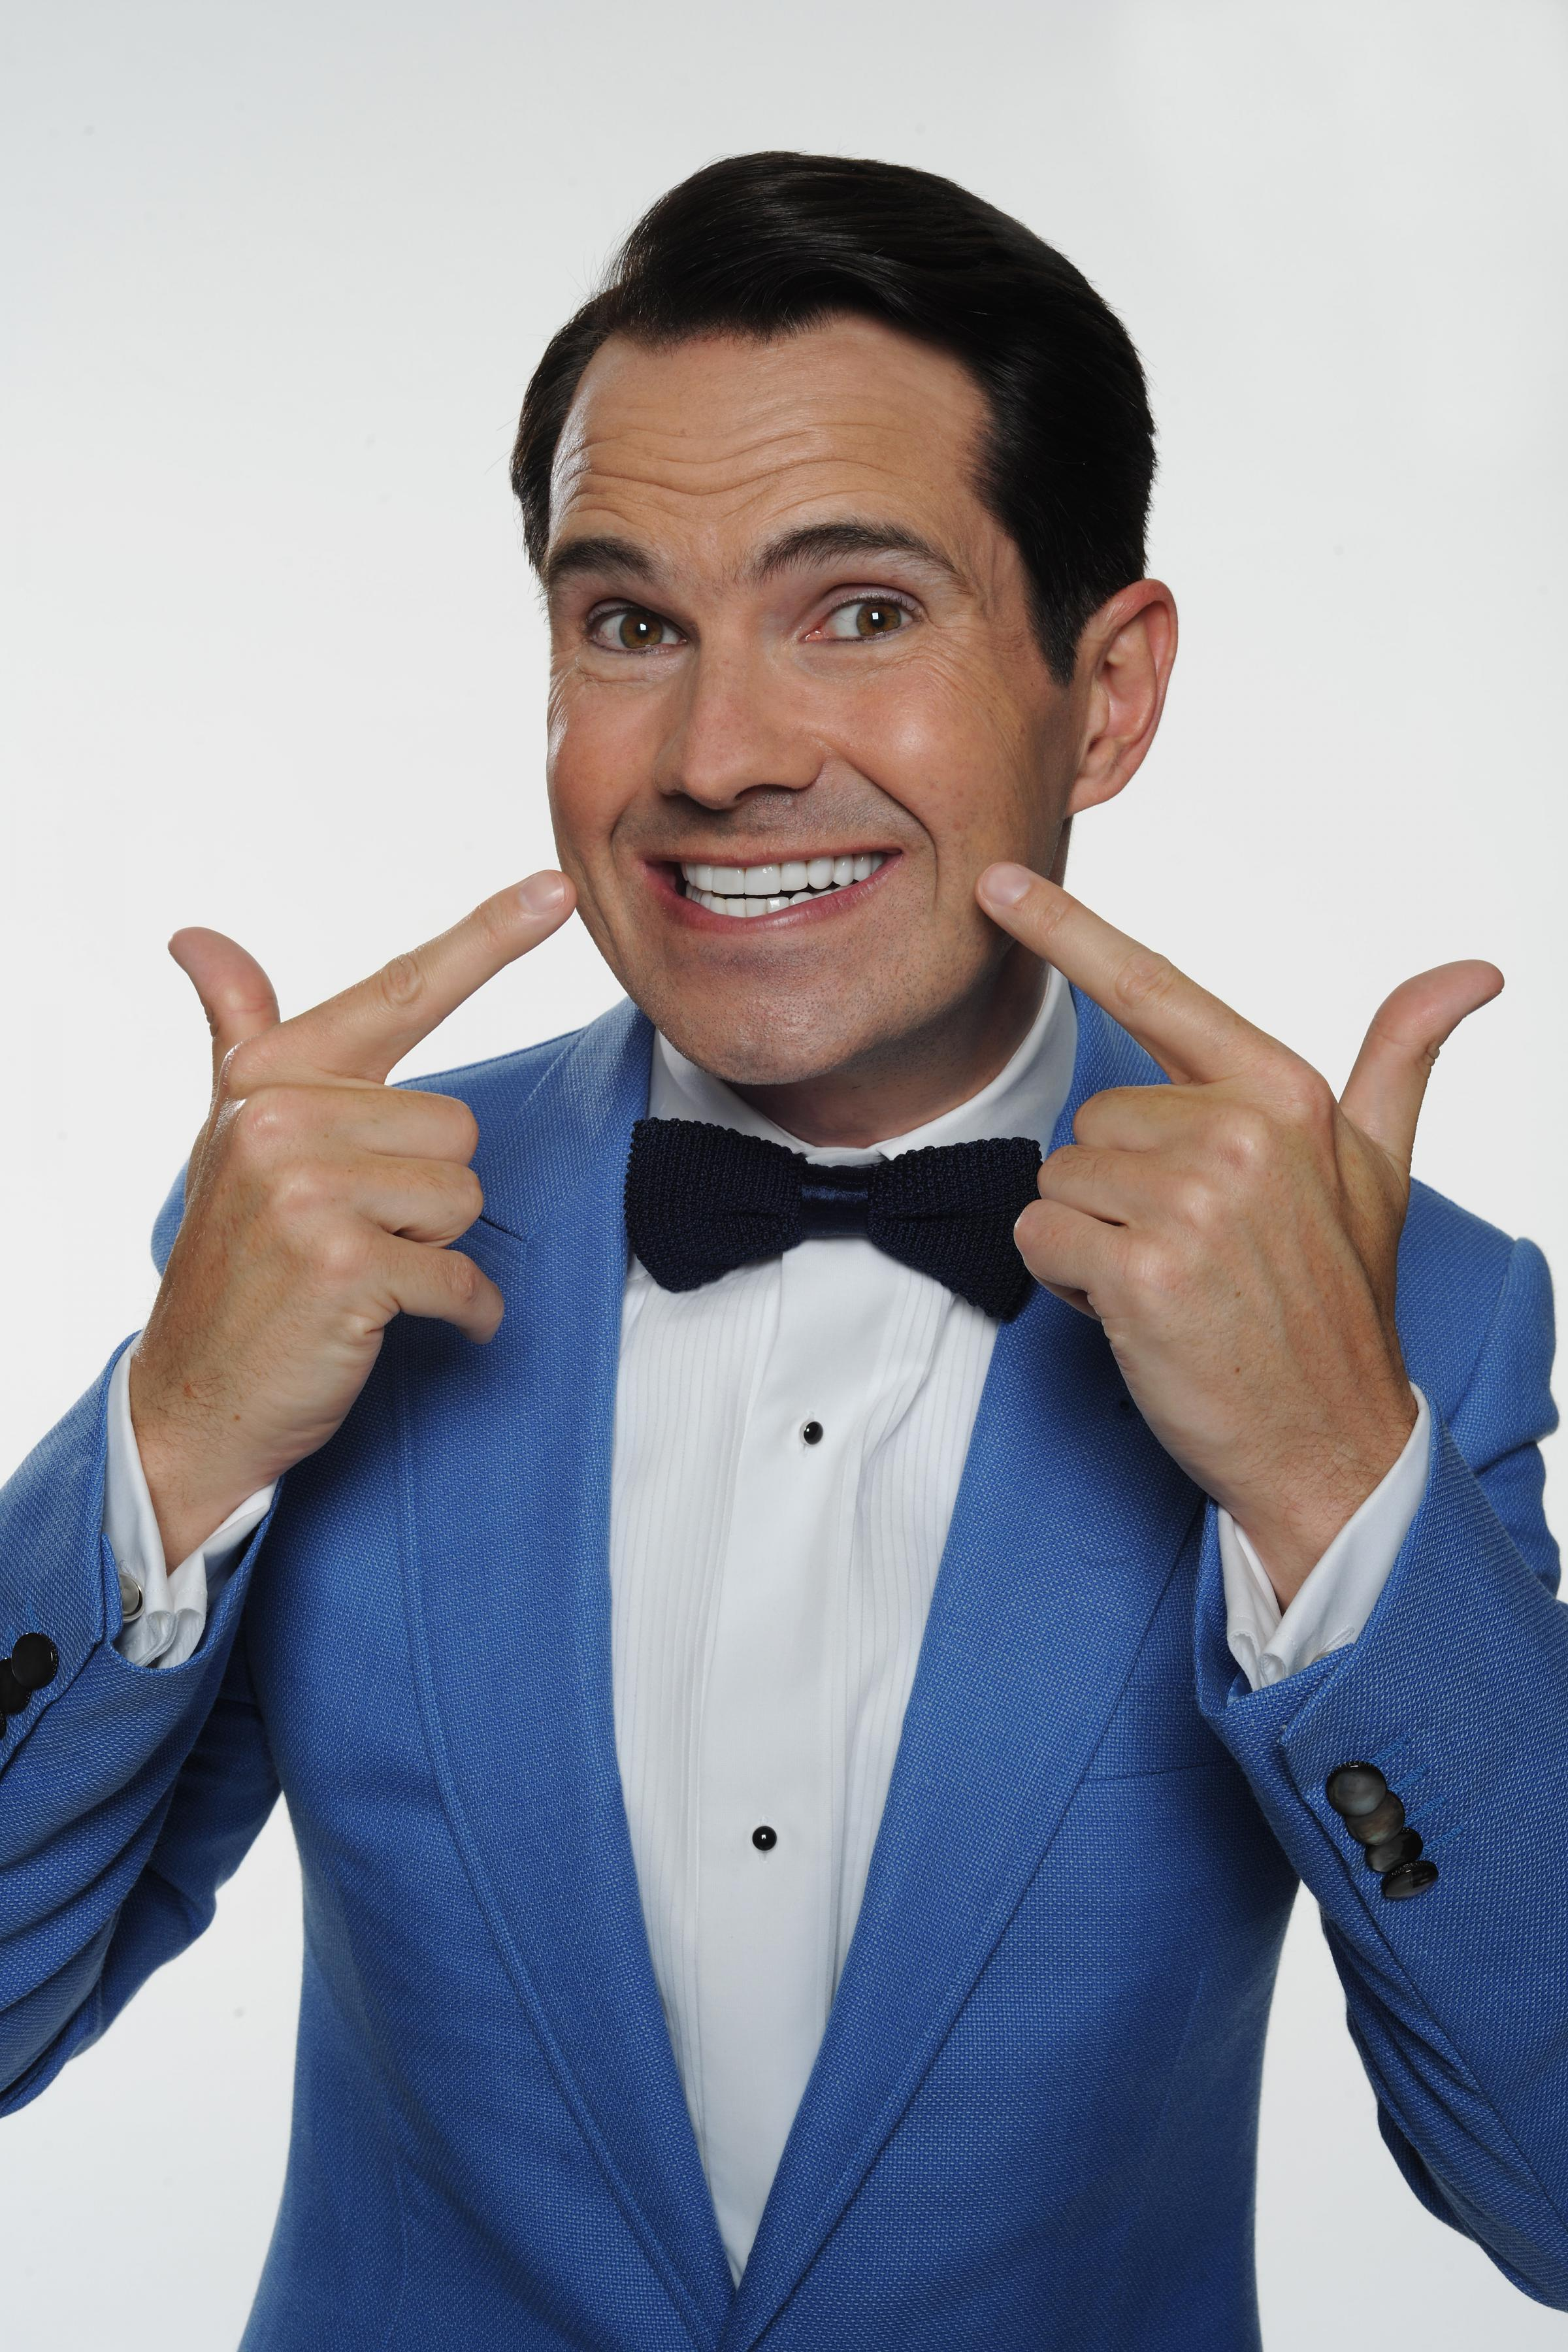 jimmy carr comedianjimmy carr на русском, jimmy carr funny business, jimmy carr stand up, jimmy carr rus, jimmy carr стендап, jimmy carr quotes, jimmy carr wife, jimmy carr comedian, jimmy carr 2017, jimmy carr rus sub, jimmy carr vk, jimmy carr show, jimmy carr accents, jimmy carr top gear, jimmy carr 2013, jimmy carr валяет дурака, jimmy carr netflix, jimmy carr book, jimmy carr comedian 2007, jimmy carr stand up на русском